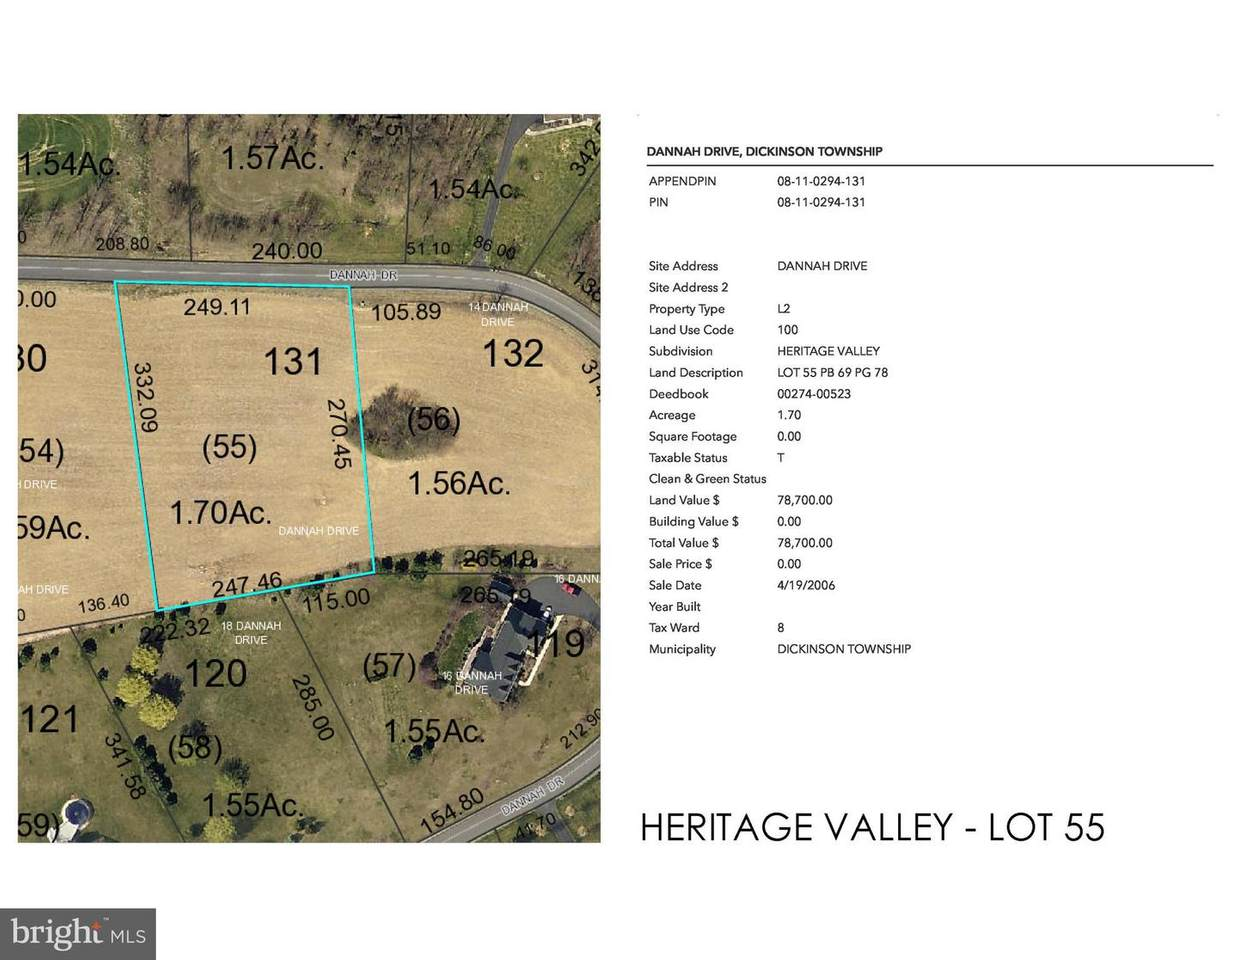 Heritage Valley - Dannah Drive - Photo 1